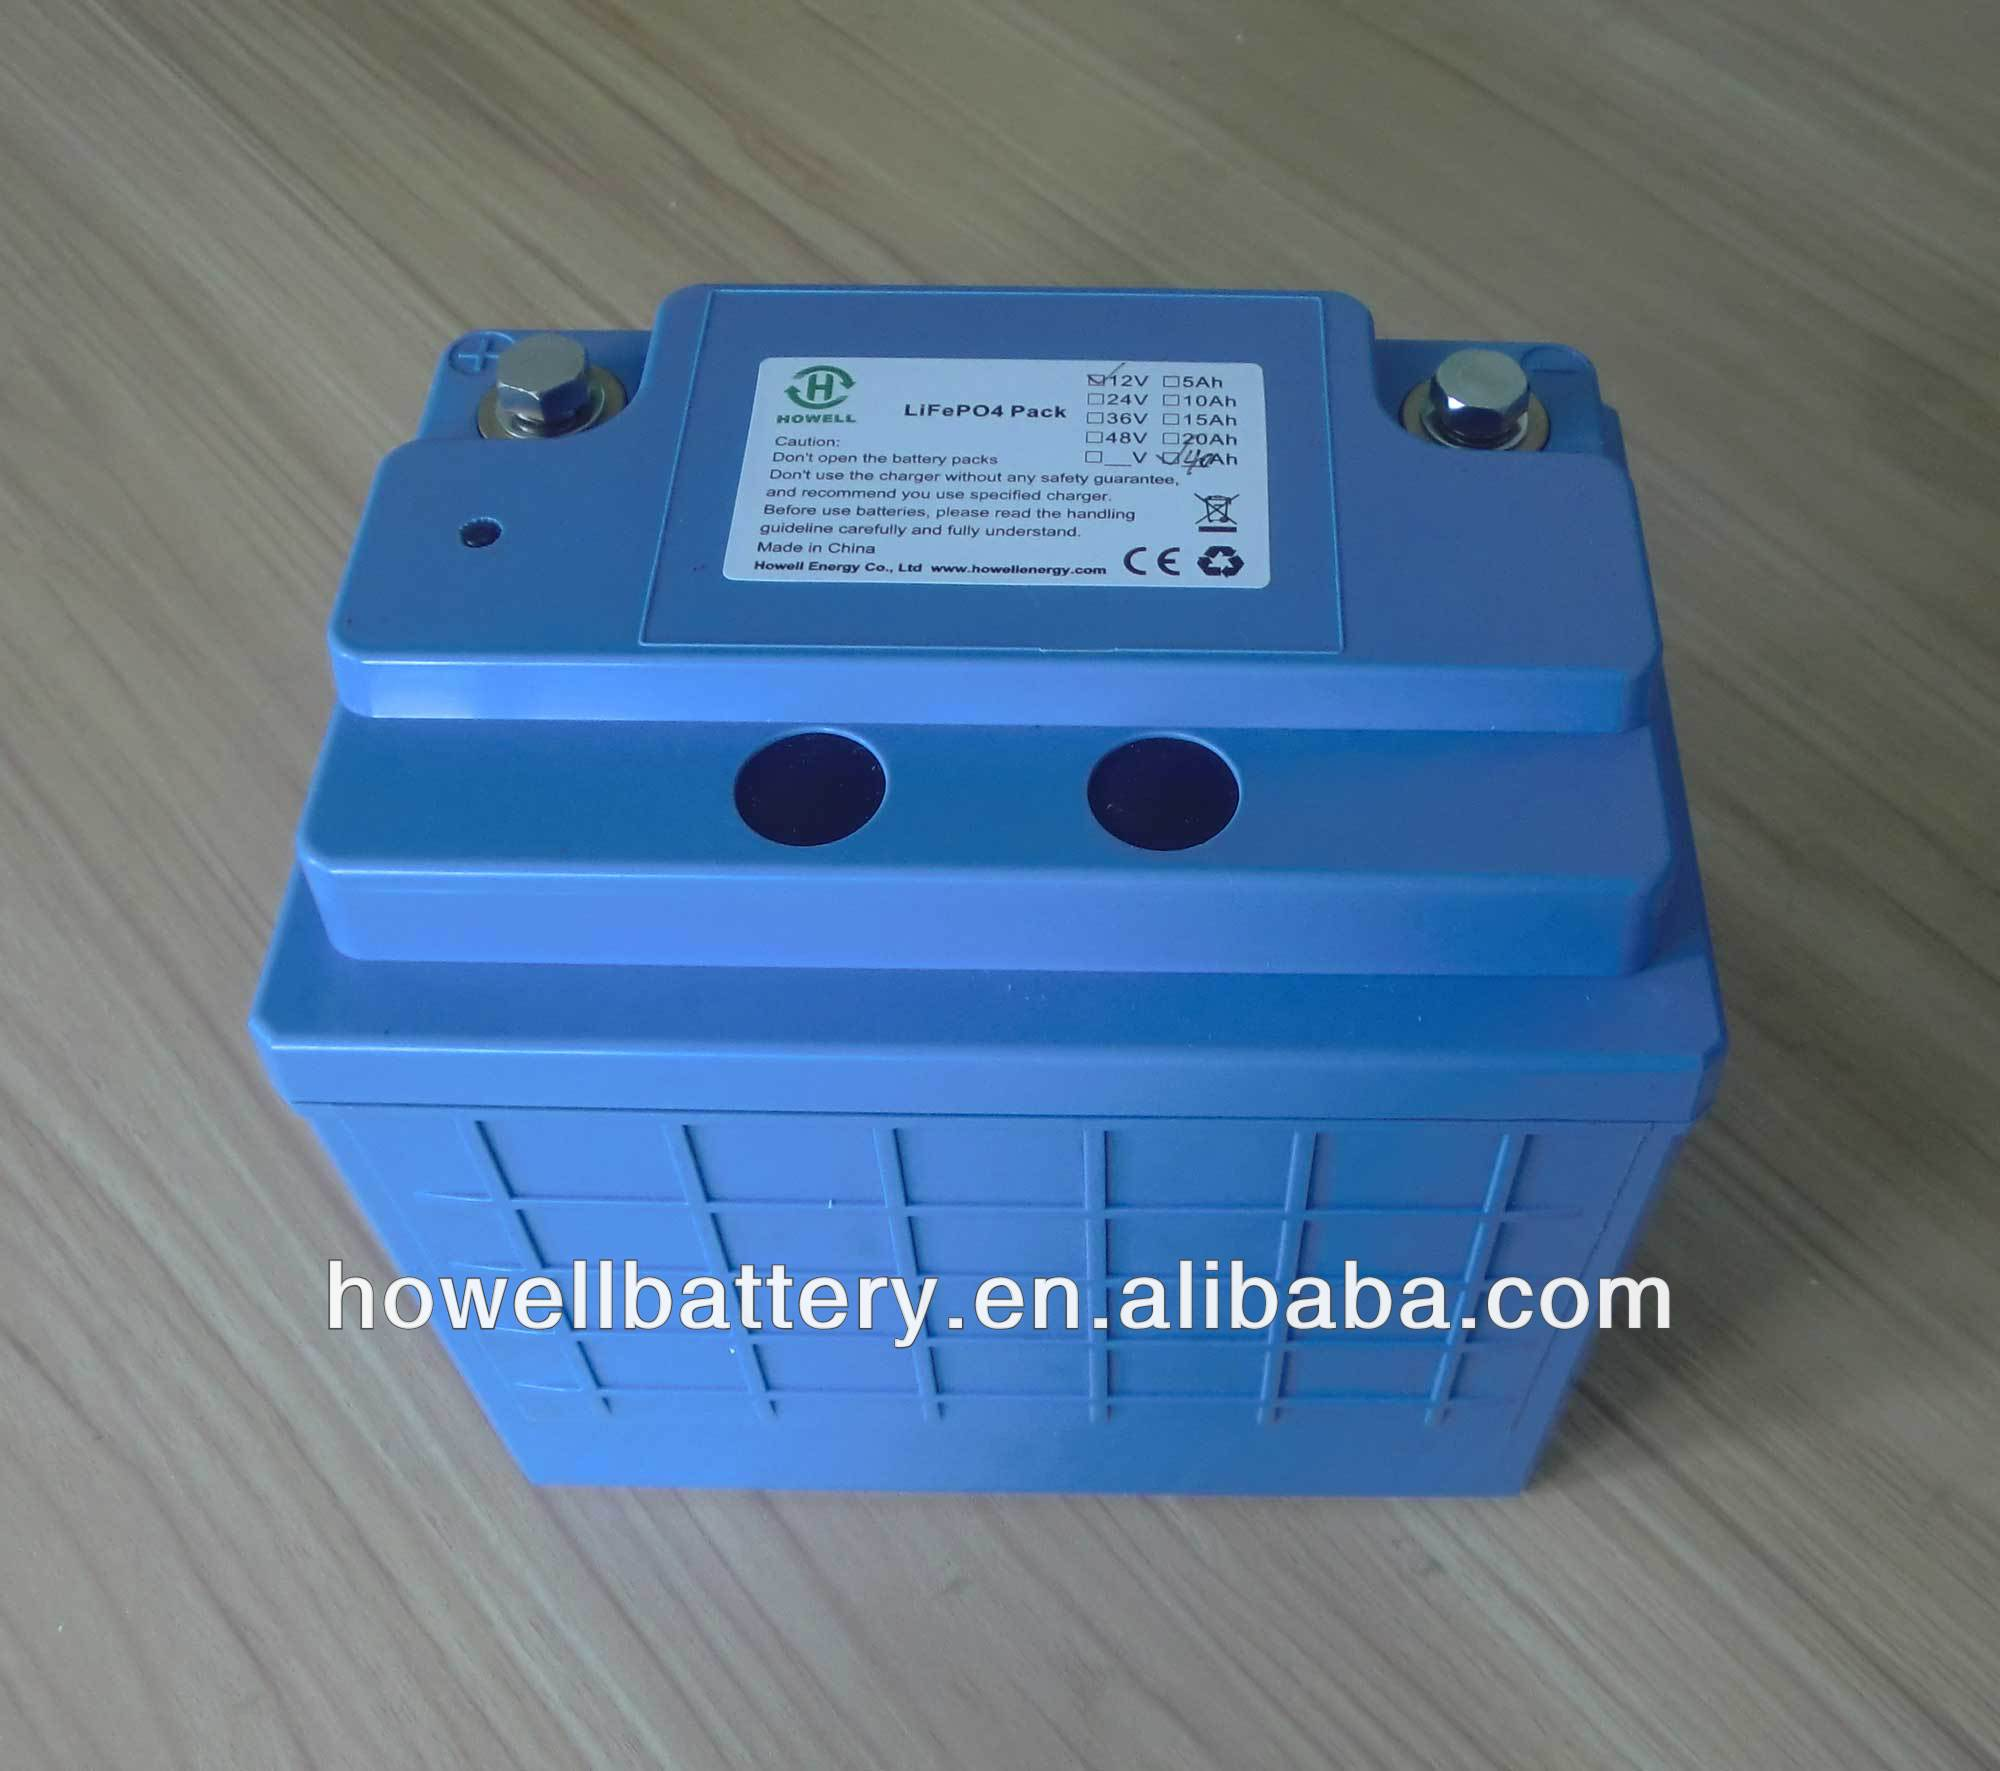 small 12 volt battery Lifepo4 rechargeable 12v 40ah lithium battery